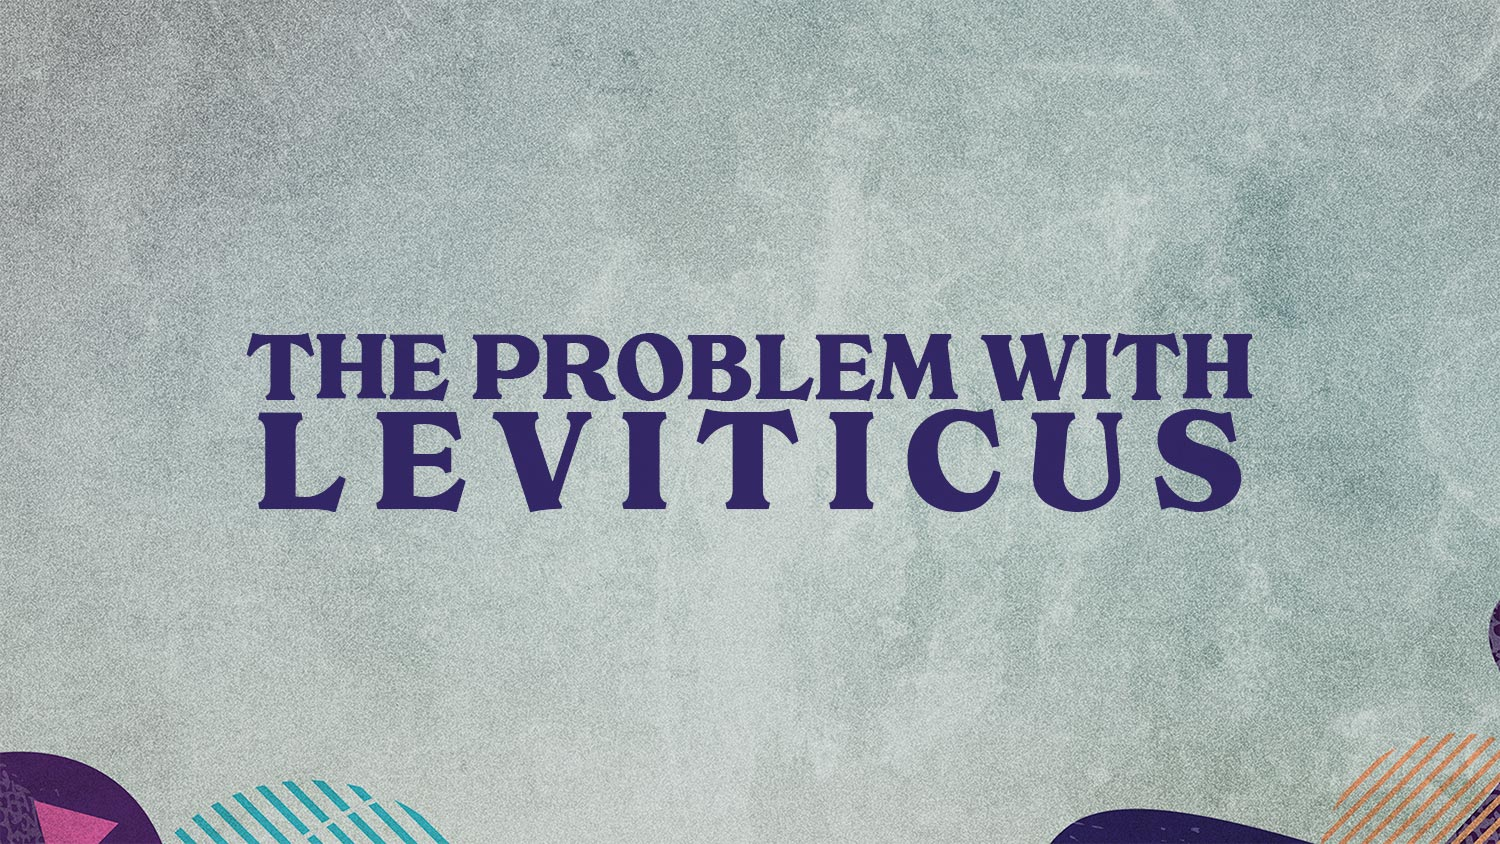 The Problem With Leviticus